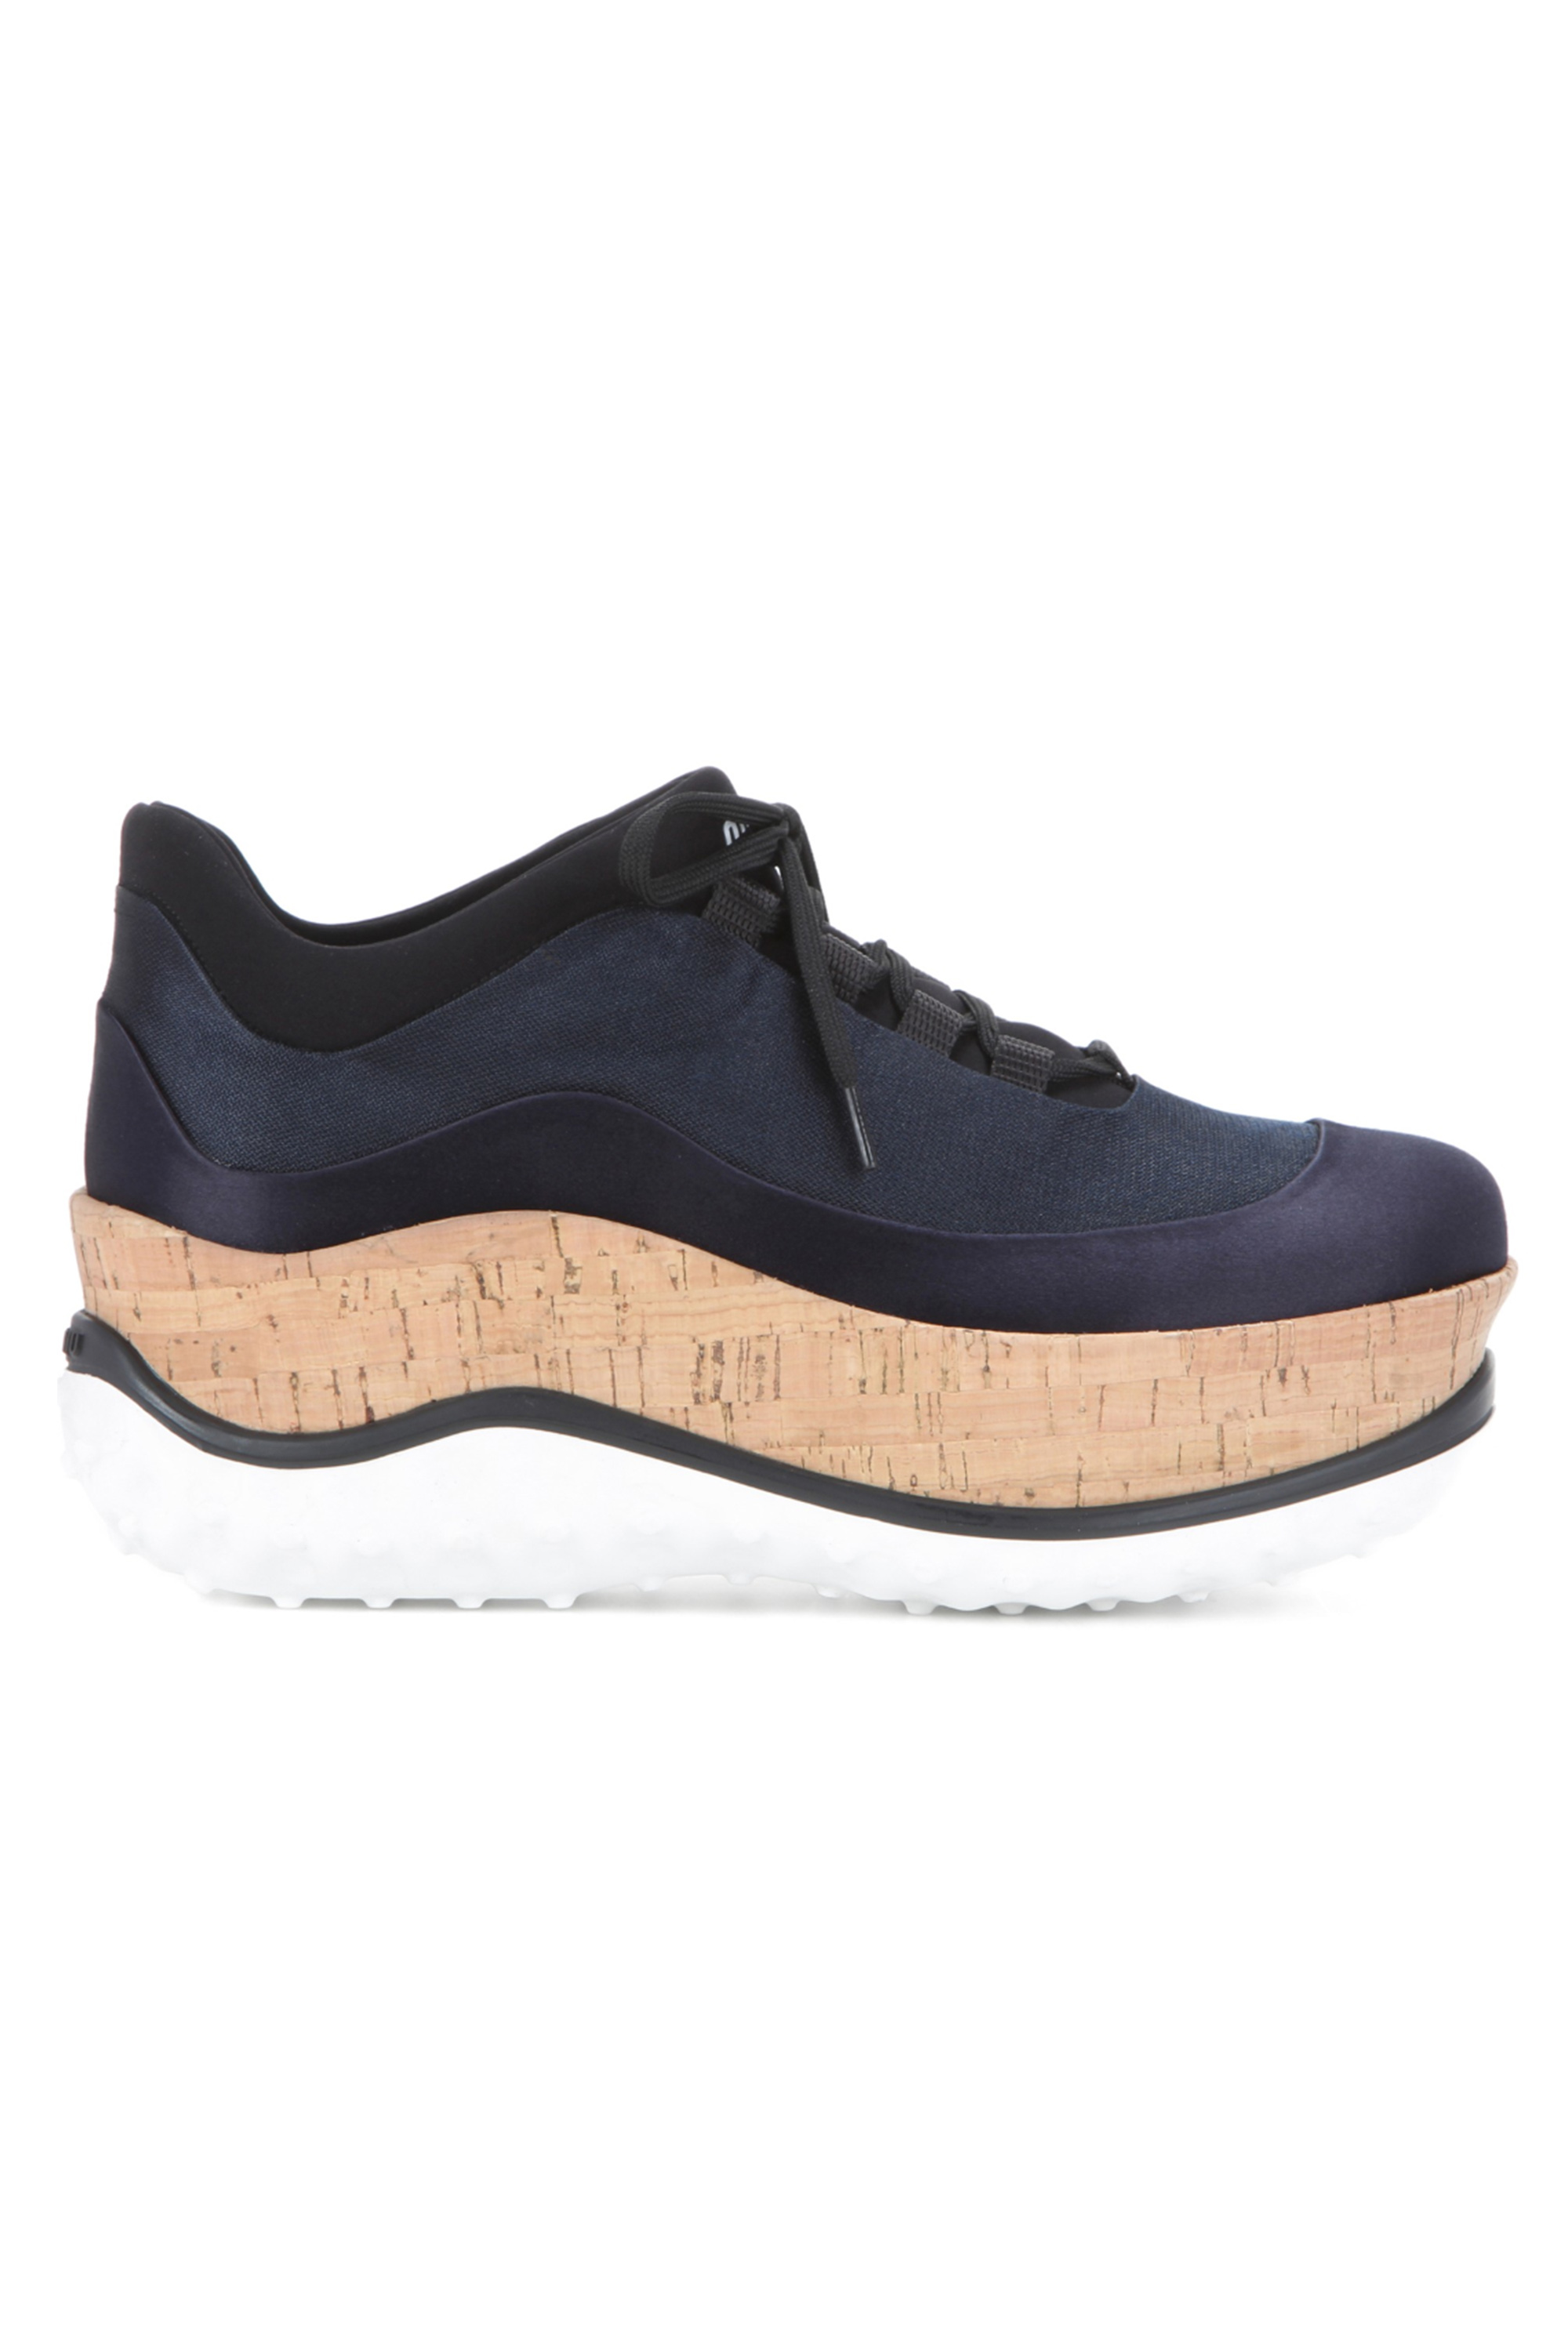 Best Sneakers and Shoes for Women - Spring Wedge and Athletic ...